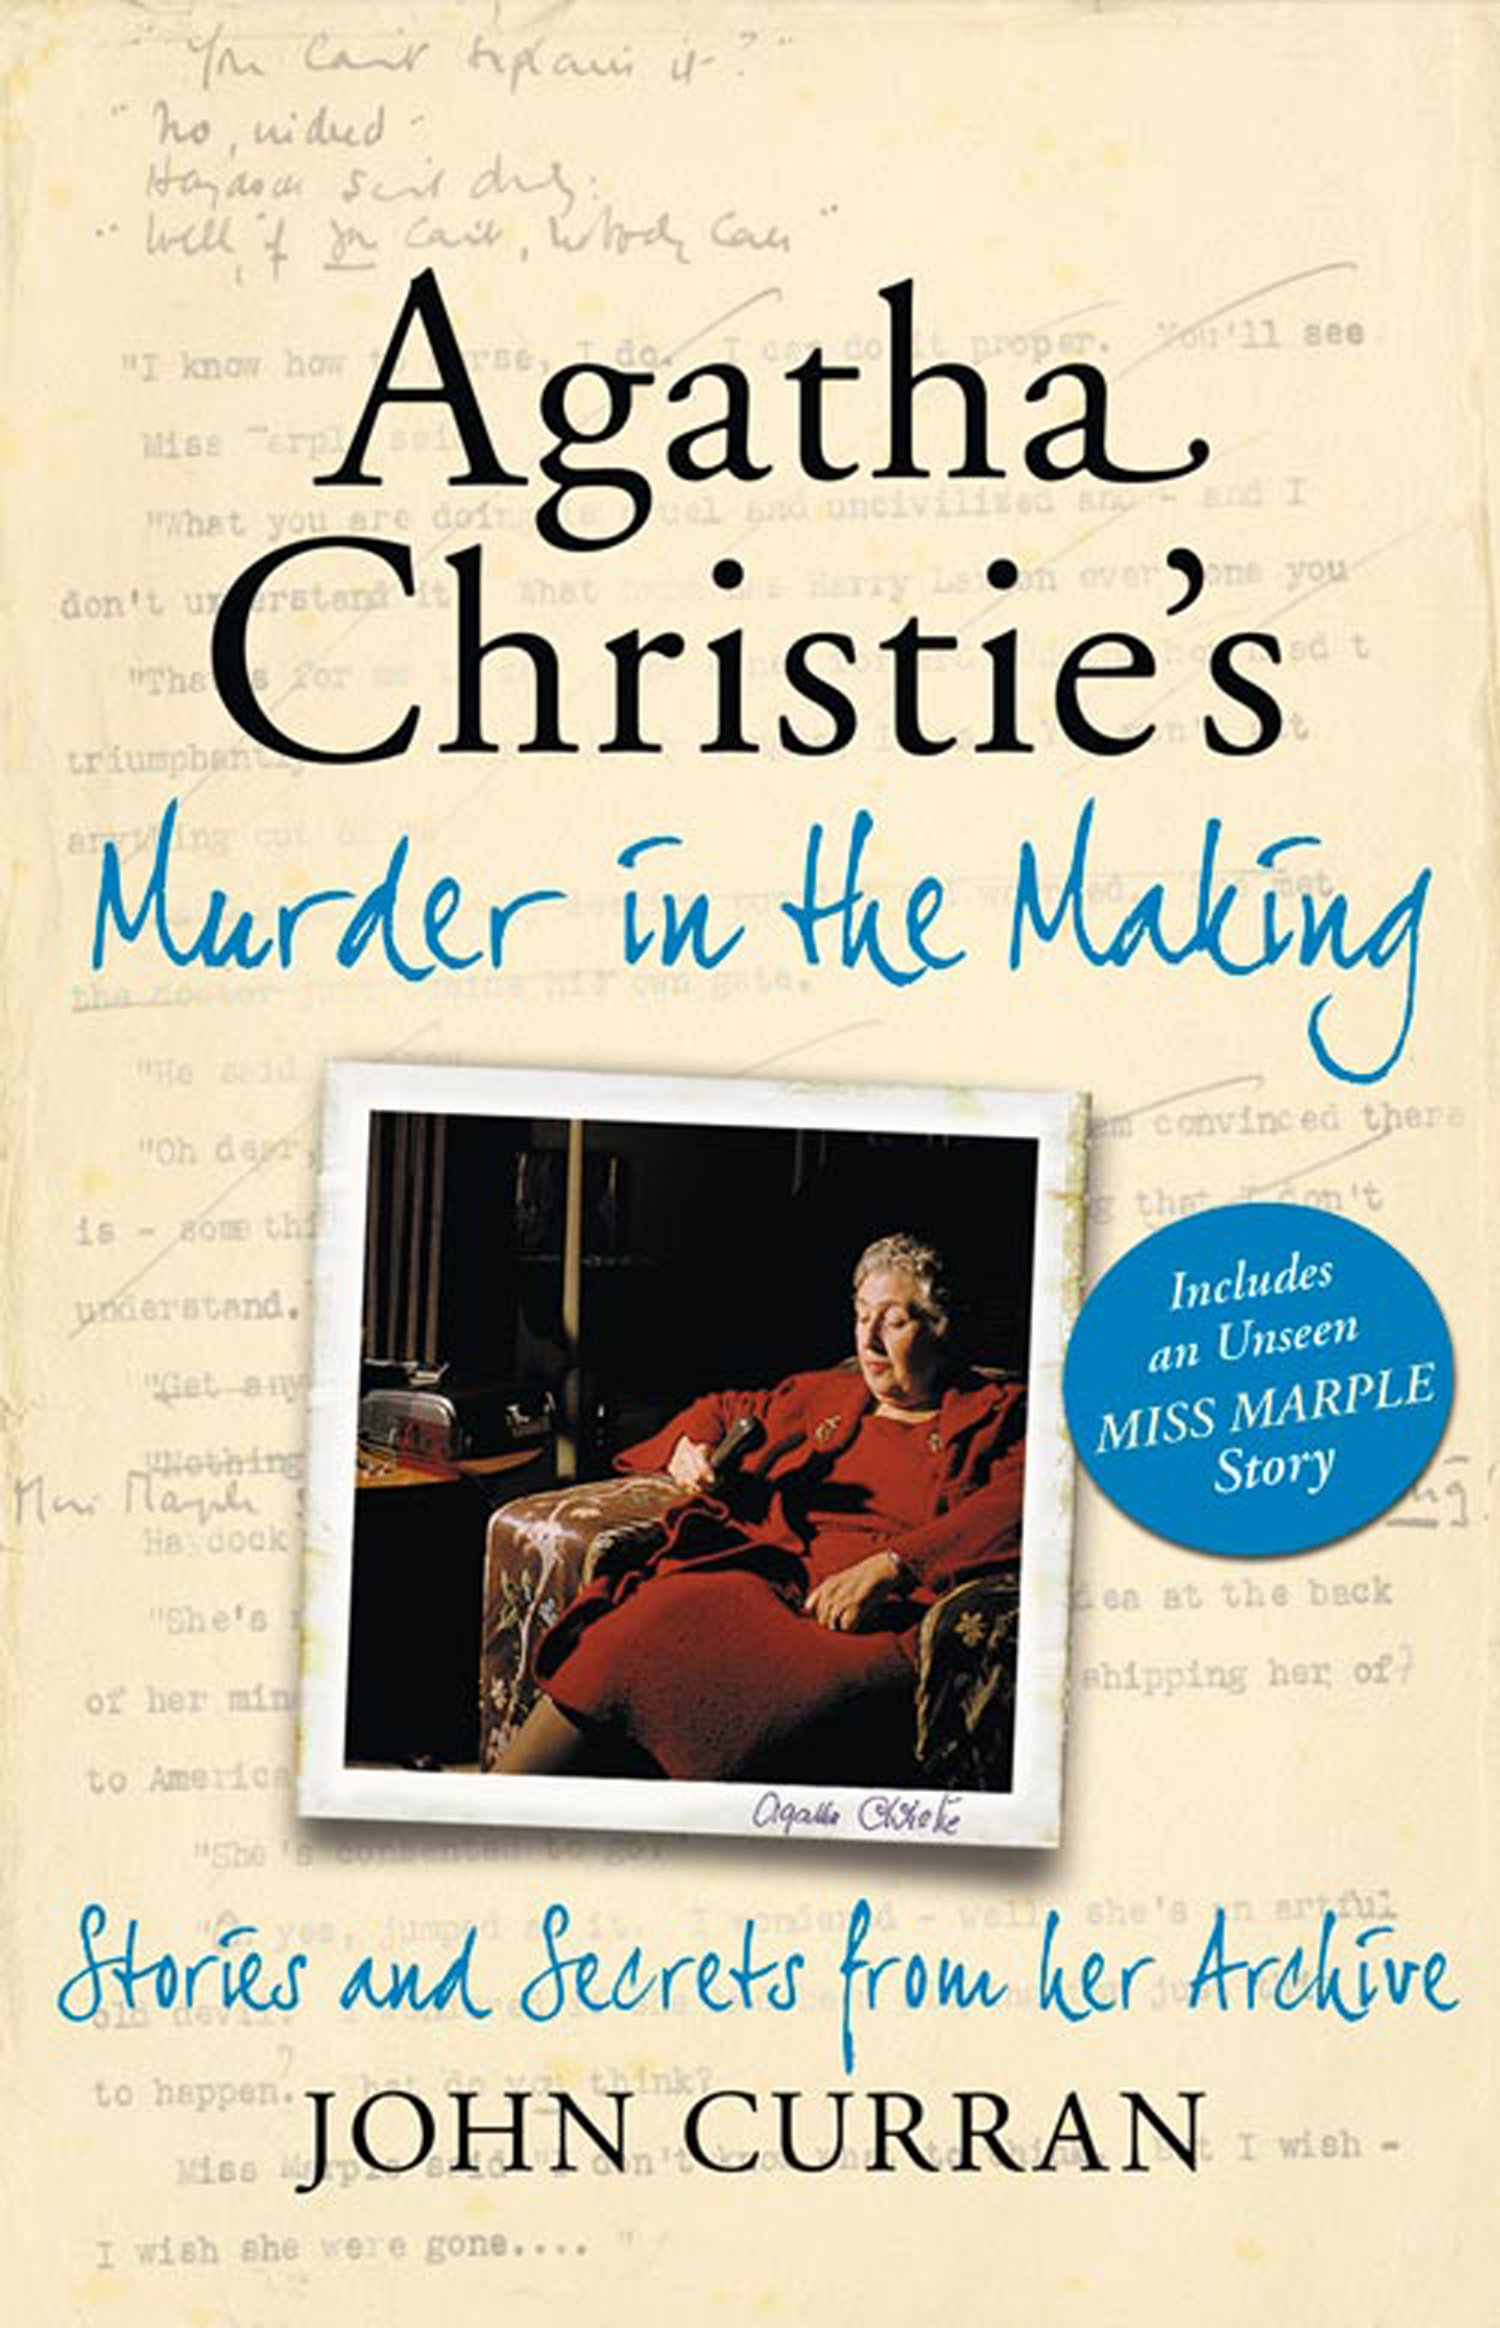 Agatha Christie's Murder In The Making  Stories And Secrets From Her Archive   Includes An Unseen Miss Marple Story  English Edition